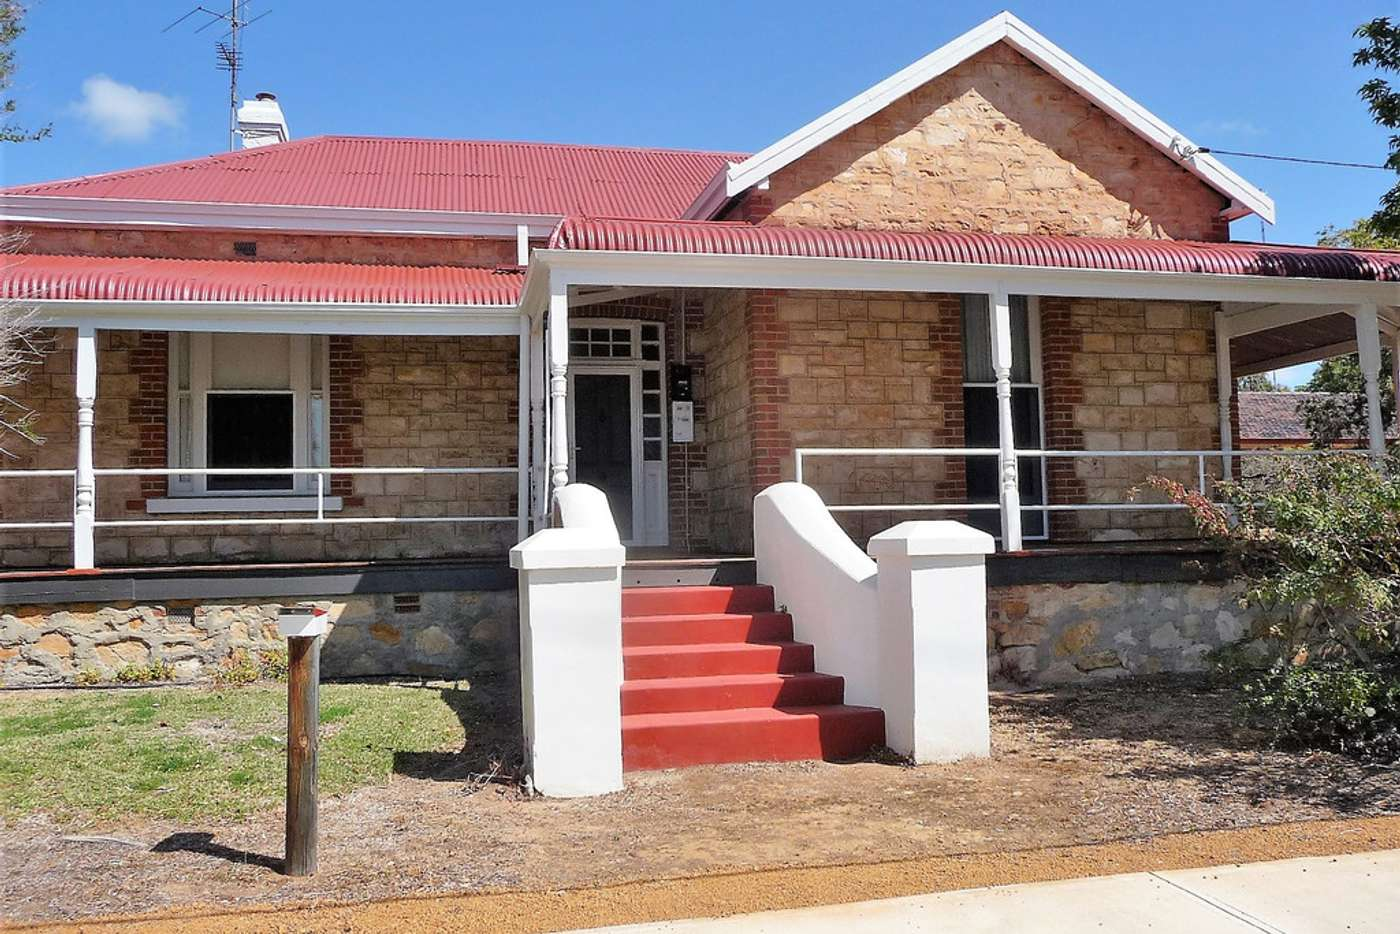 Main view of Homely house listing, 123 FORREST STREET, Beverley WA 6304